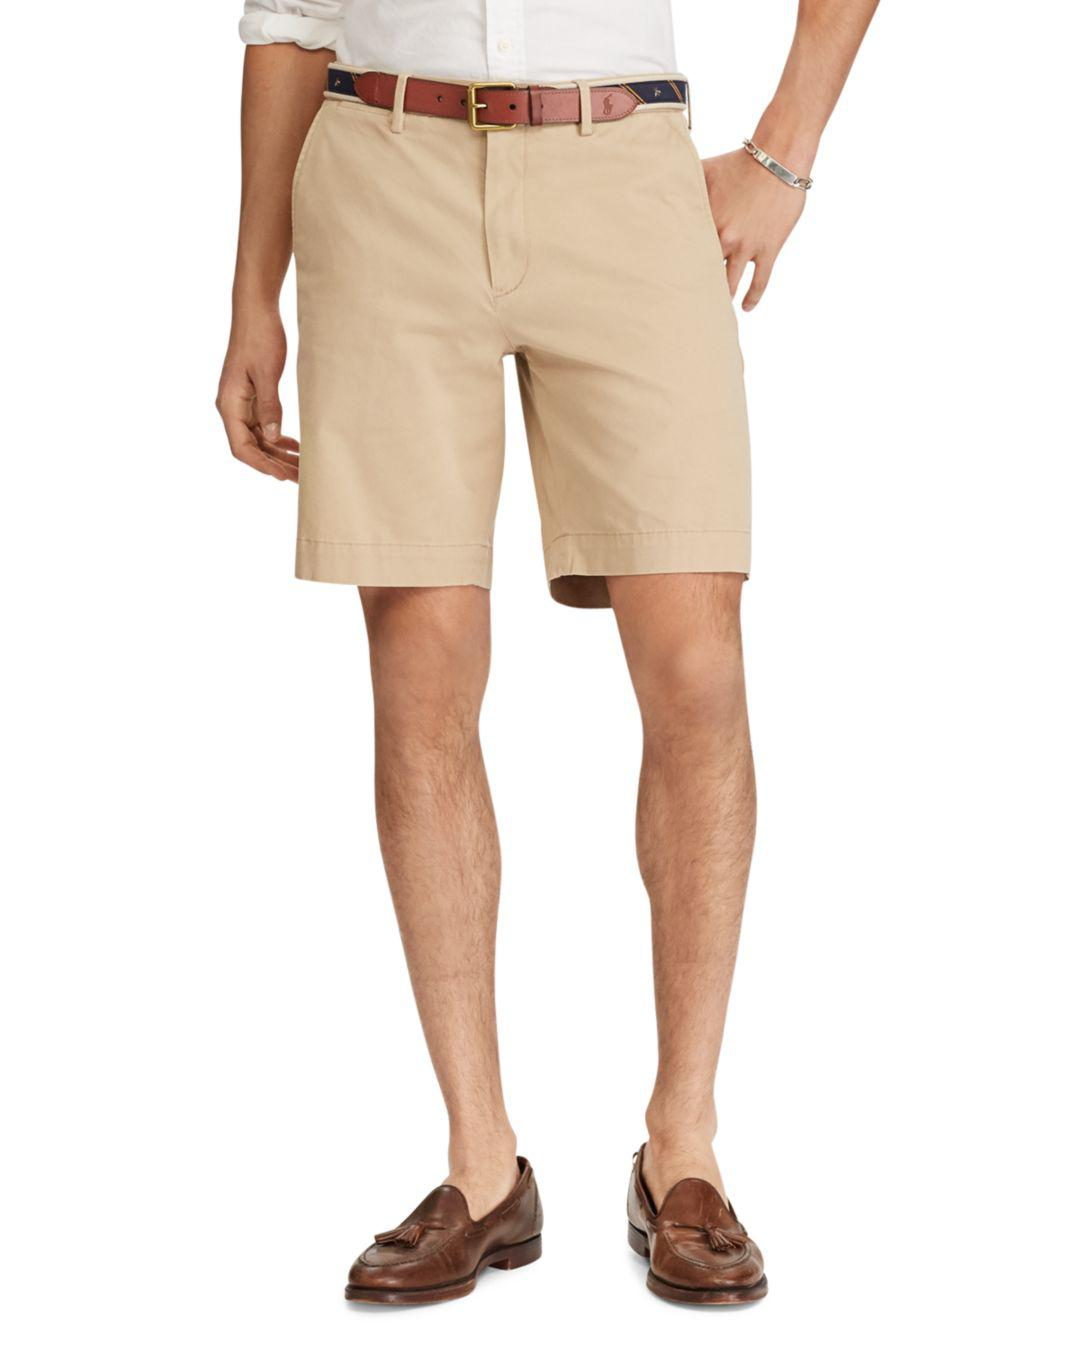 5a68a6abfe05 Gallery. Previously sold at: Bloomingdale's · Men's Ralph Lauren Classic